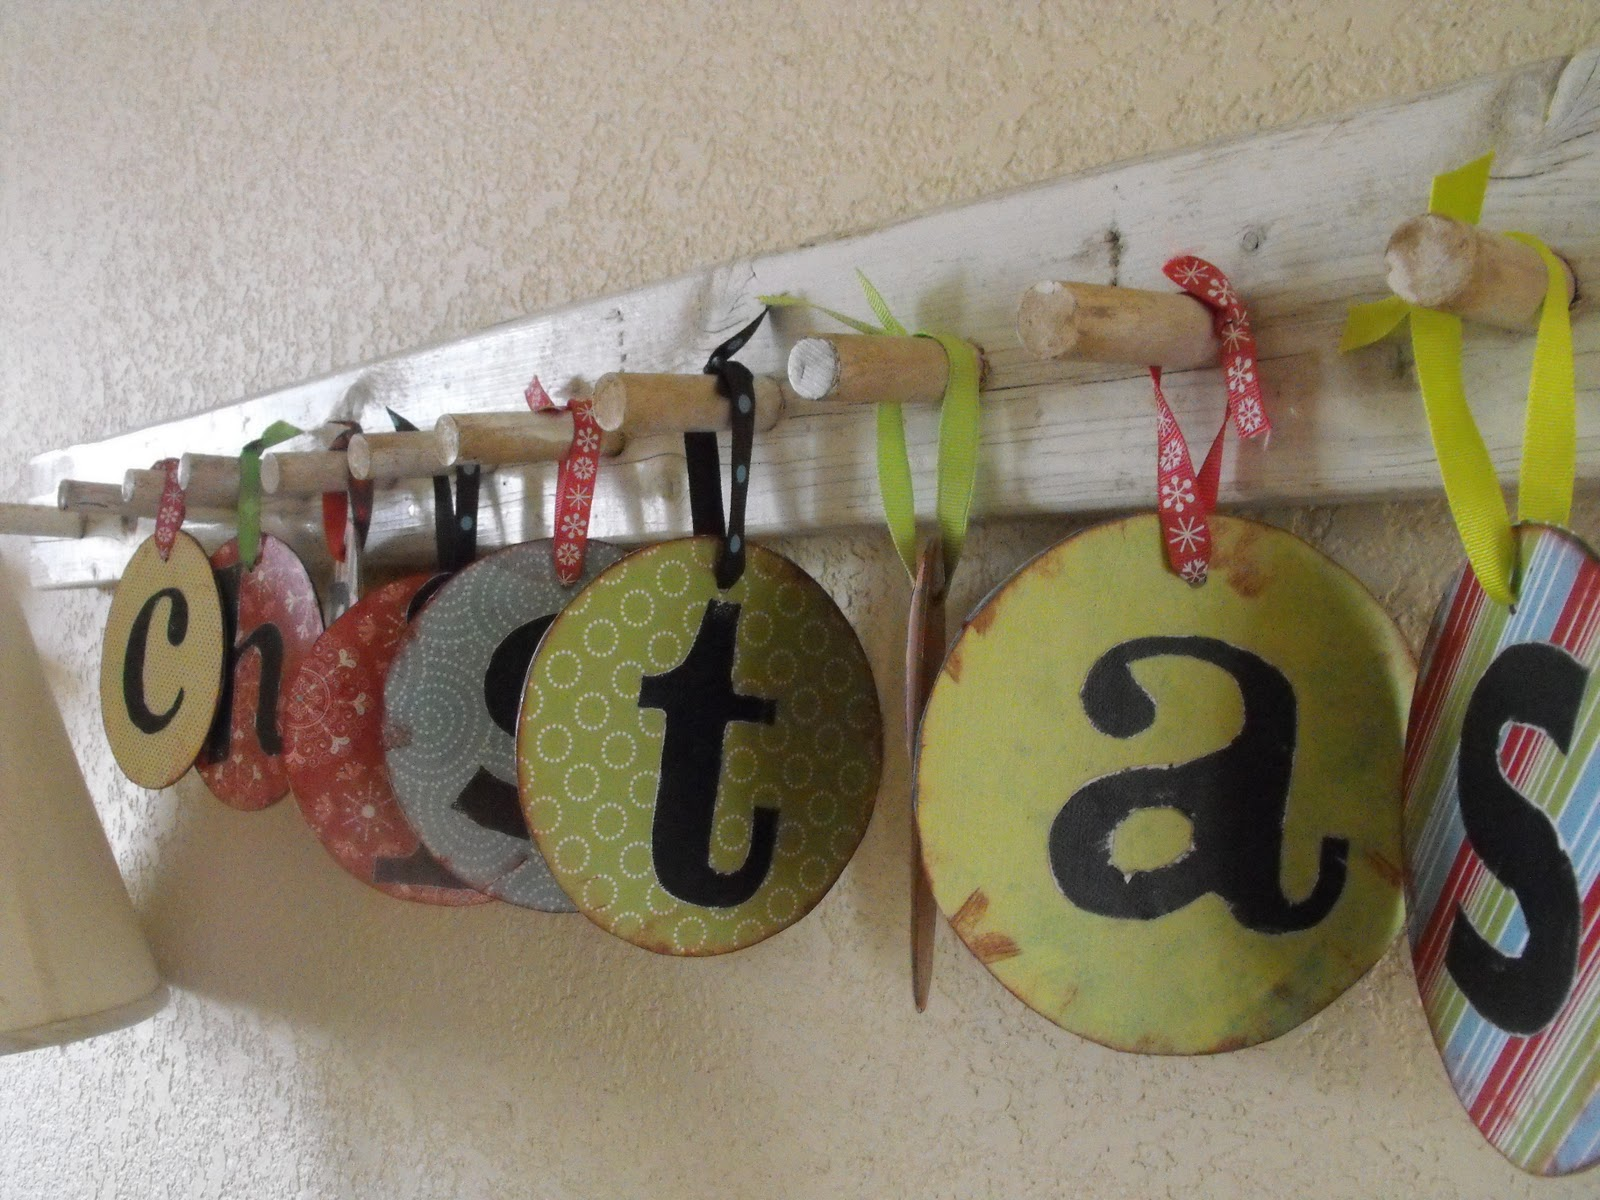 Diy Christmas Decorations Nz : Lovely green lifestyle diy holiday decorating ideas